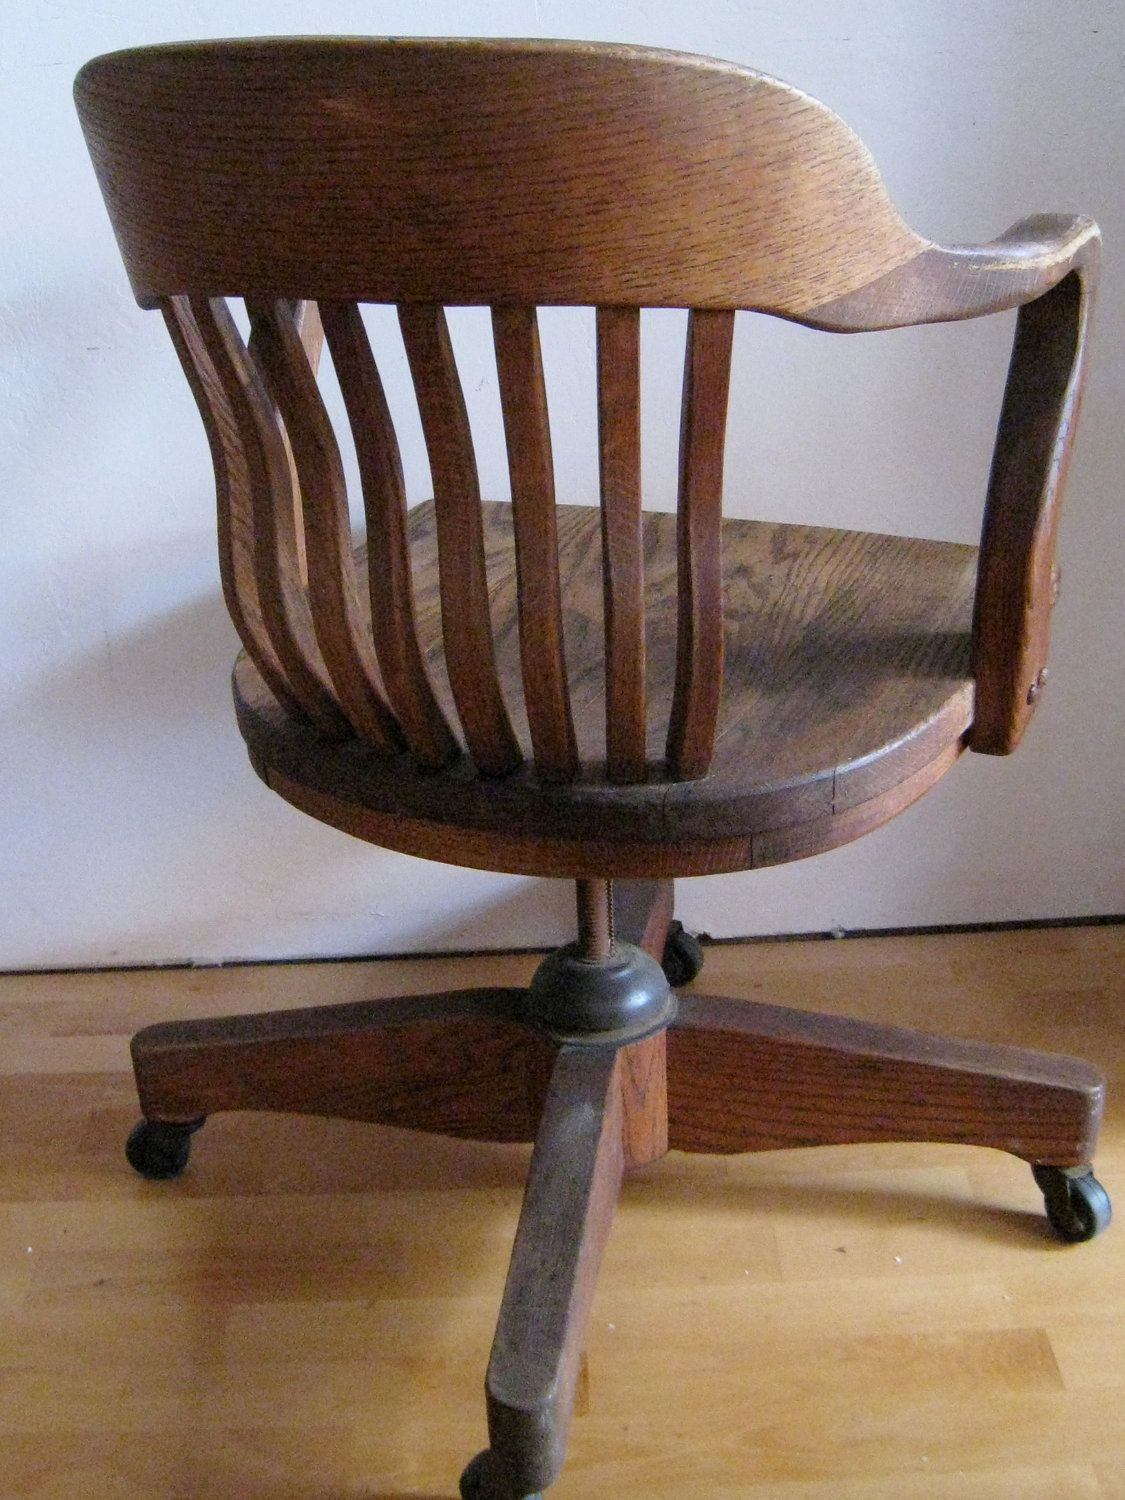 Oak Desk Chair Art Deco Swivel Tilting Rolling Office Chair - Art deco furniture designers desks